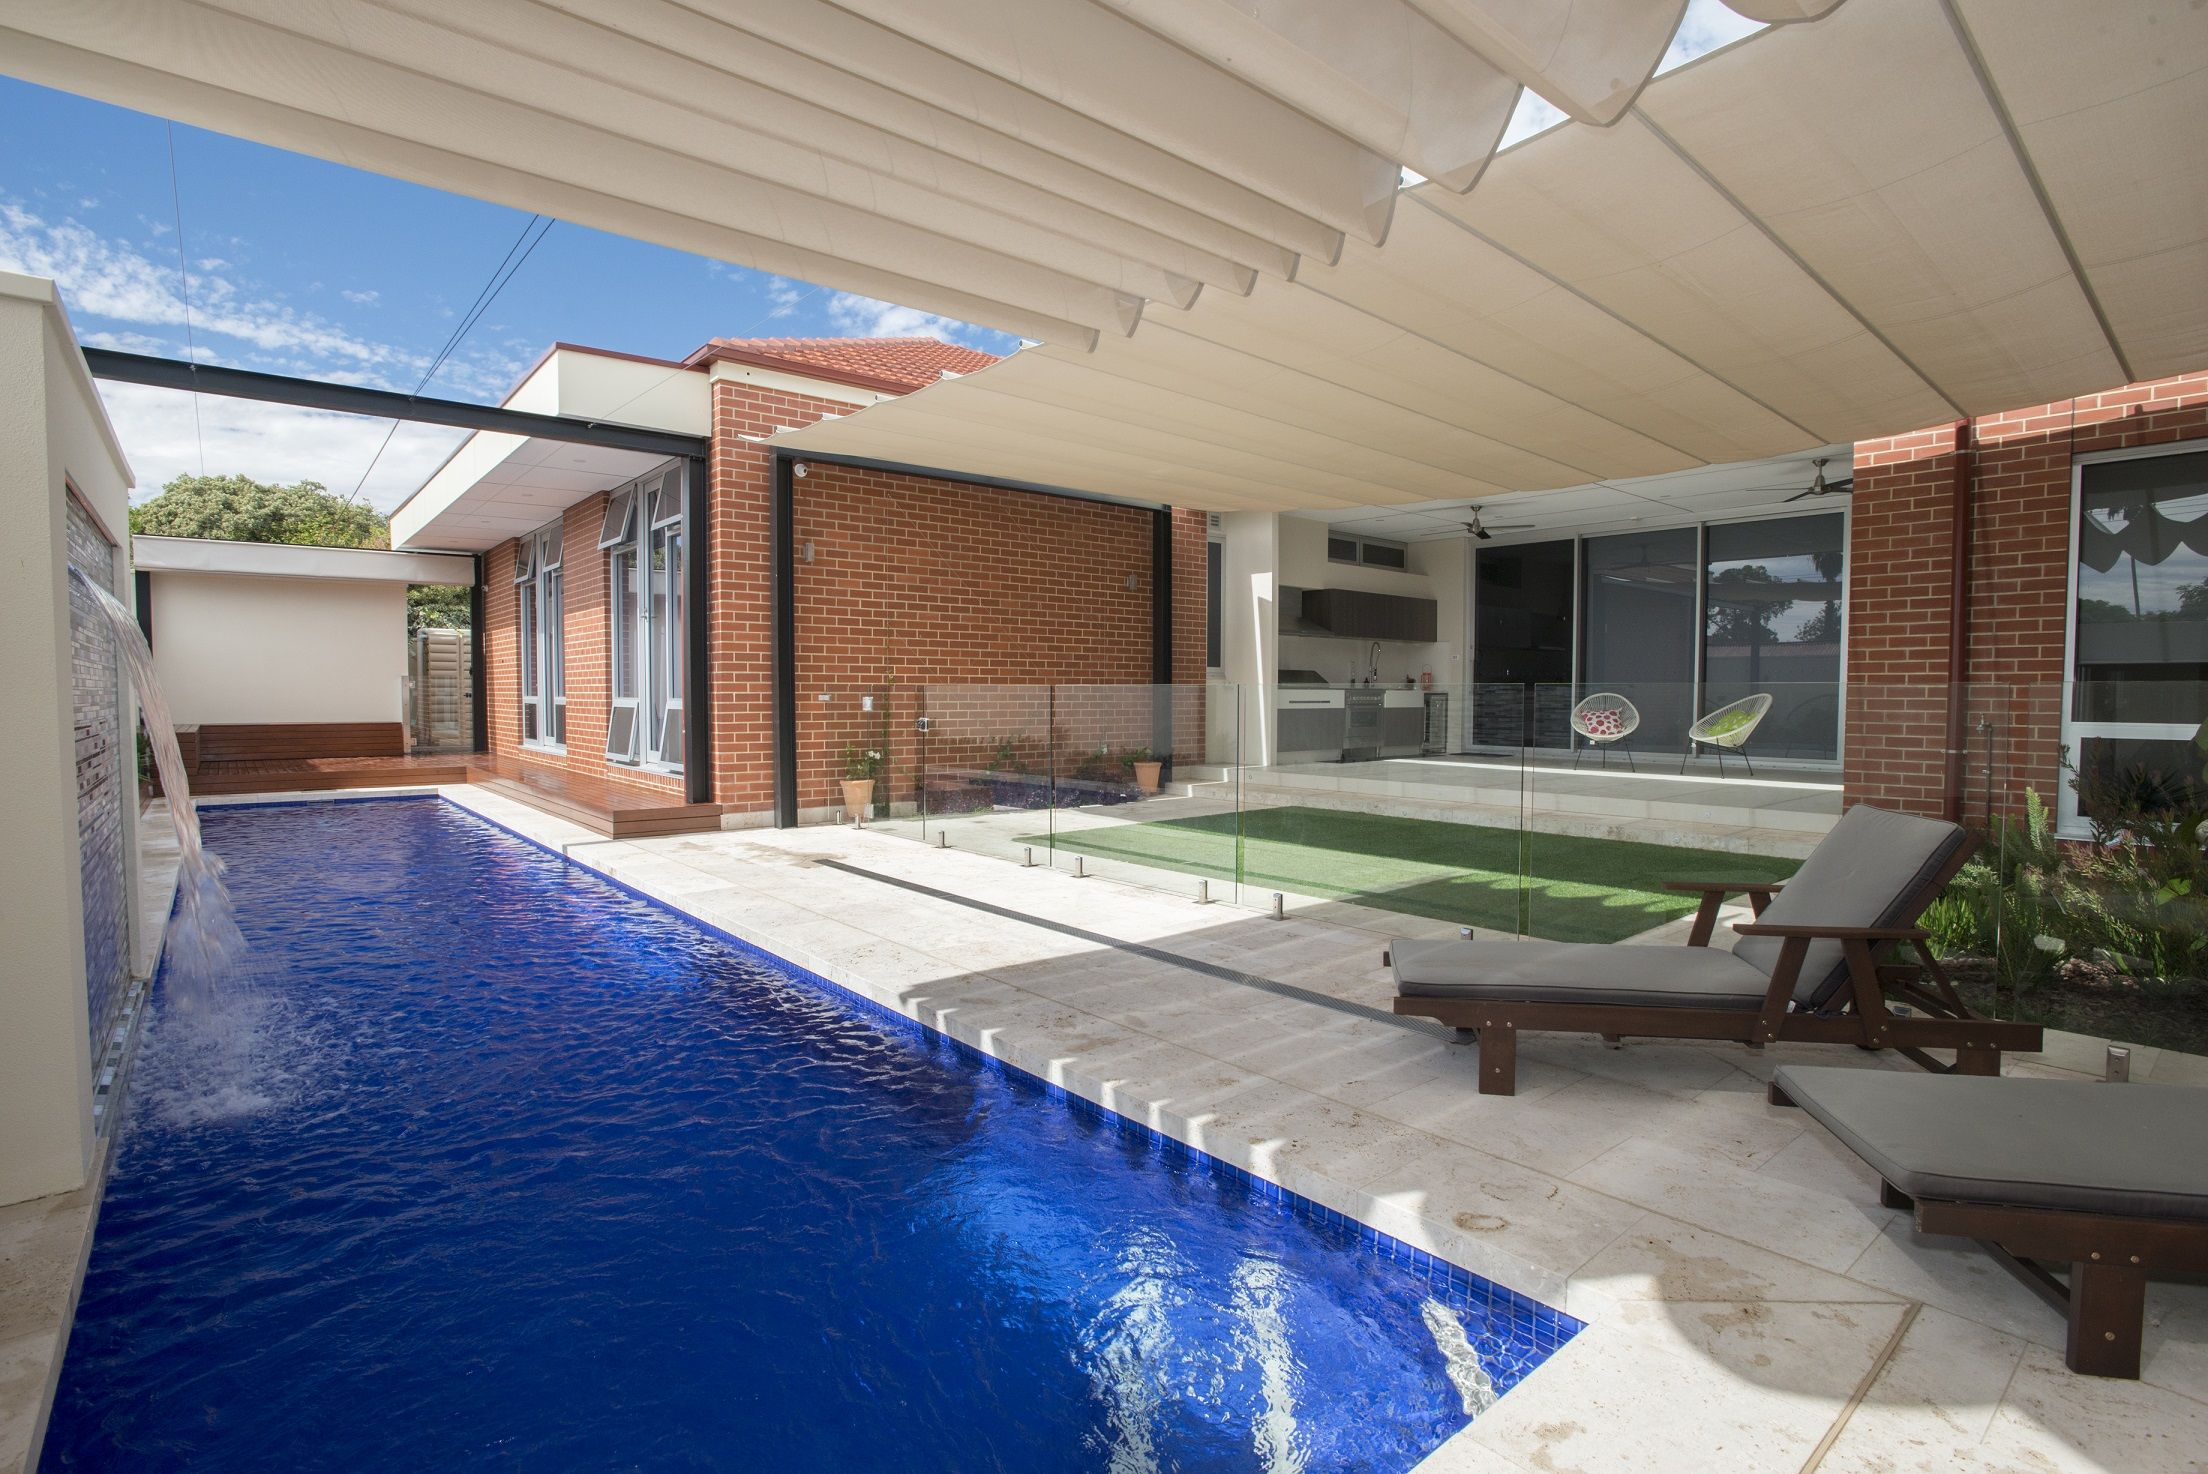 Swimming Pool Shade Ideas we have collected 20 pool shade ideas to help you choose the best type for your swimming pool it is most natural when you think of a swimming pool Find This Pin And More On Retractable Shade Sails Retractable Shade Ideas Shade Sails Over Pool